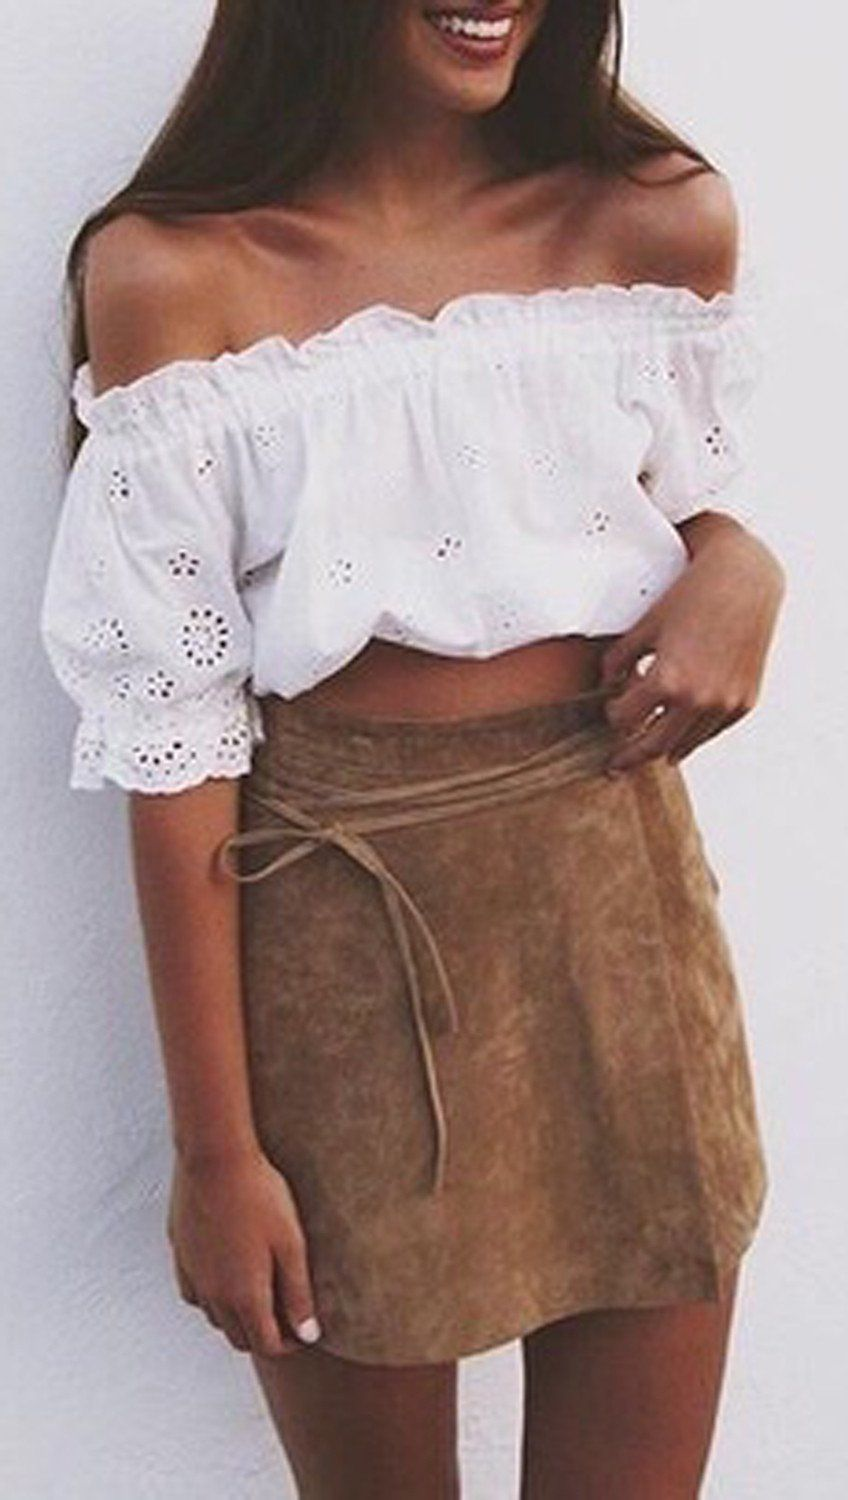 0b381eefbf50 Cute Teenage Teen Bohemian Boho Outfits for Summer 2017 - Tanned Skin -  White Off the Shoulder Top - Suede Leather High Waisted Skirt -  MyBodiArt.com